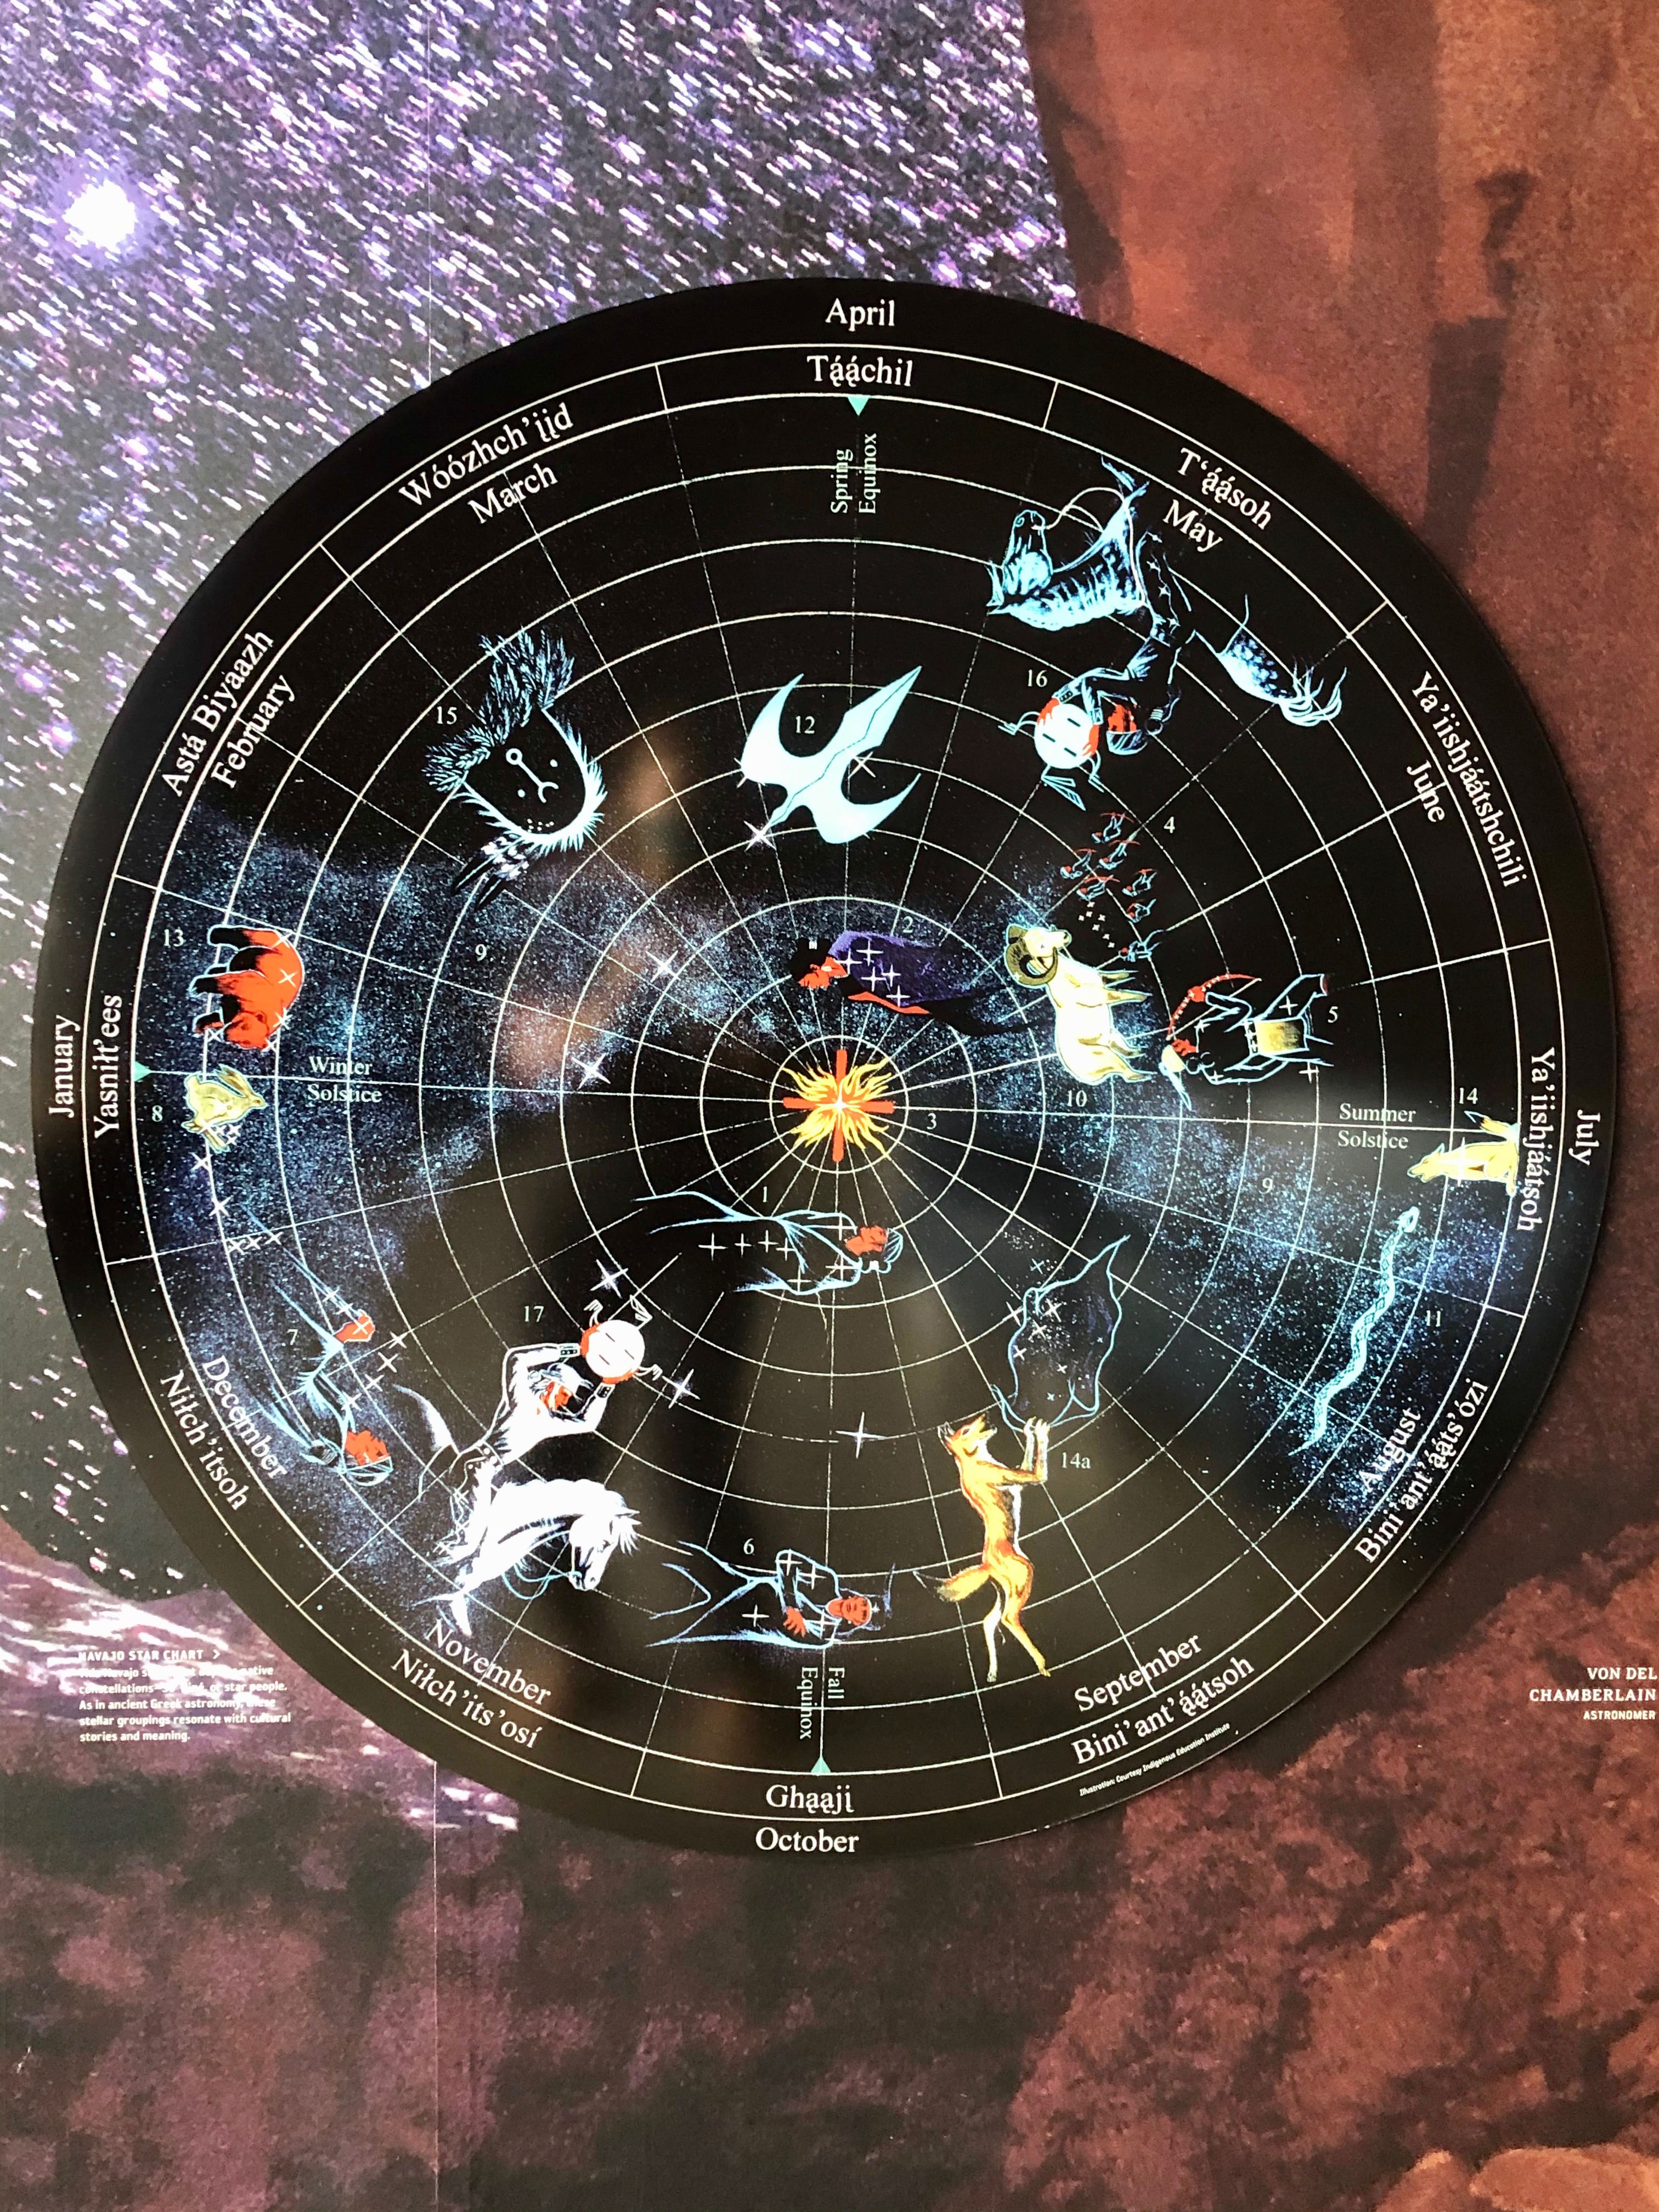 Star chat of constellations comparing Western vs Navajo